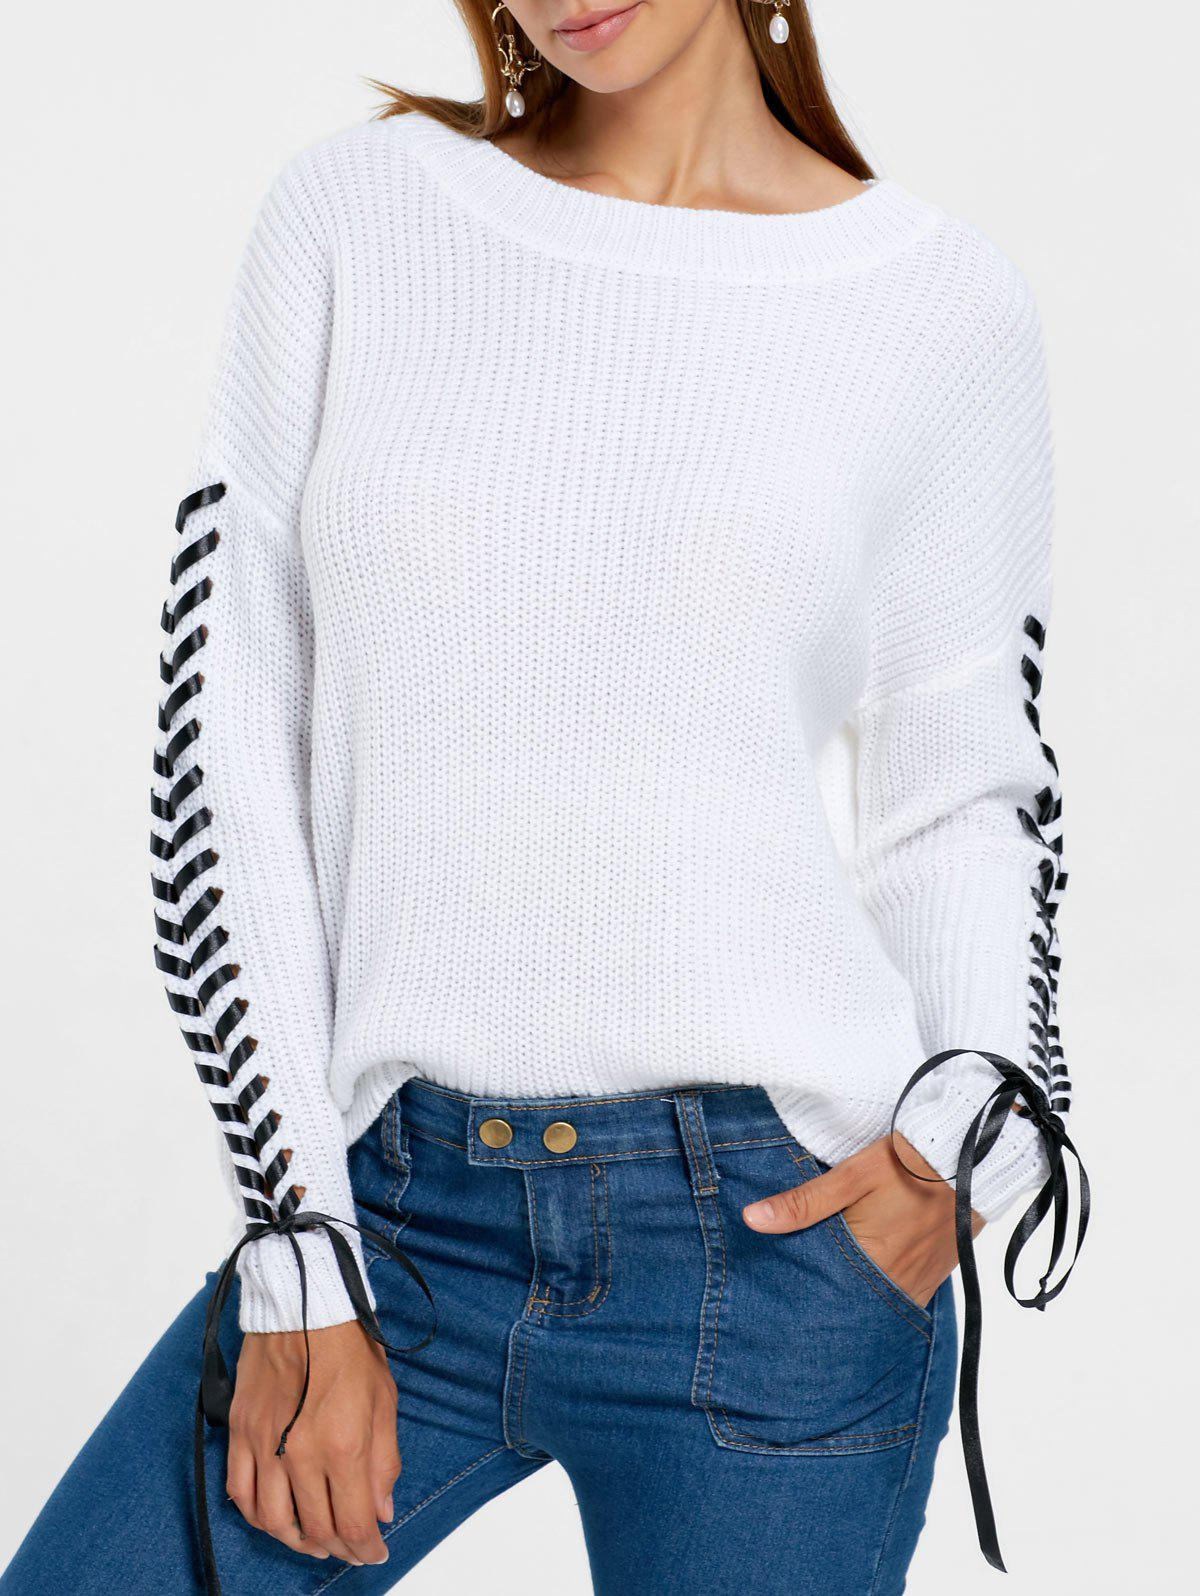 Drop Shoulder Lace Up Chunky Sweater lace contrast back drop shoulder shirt